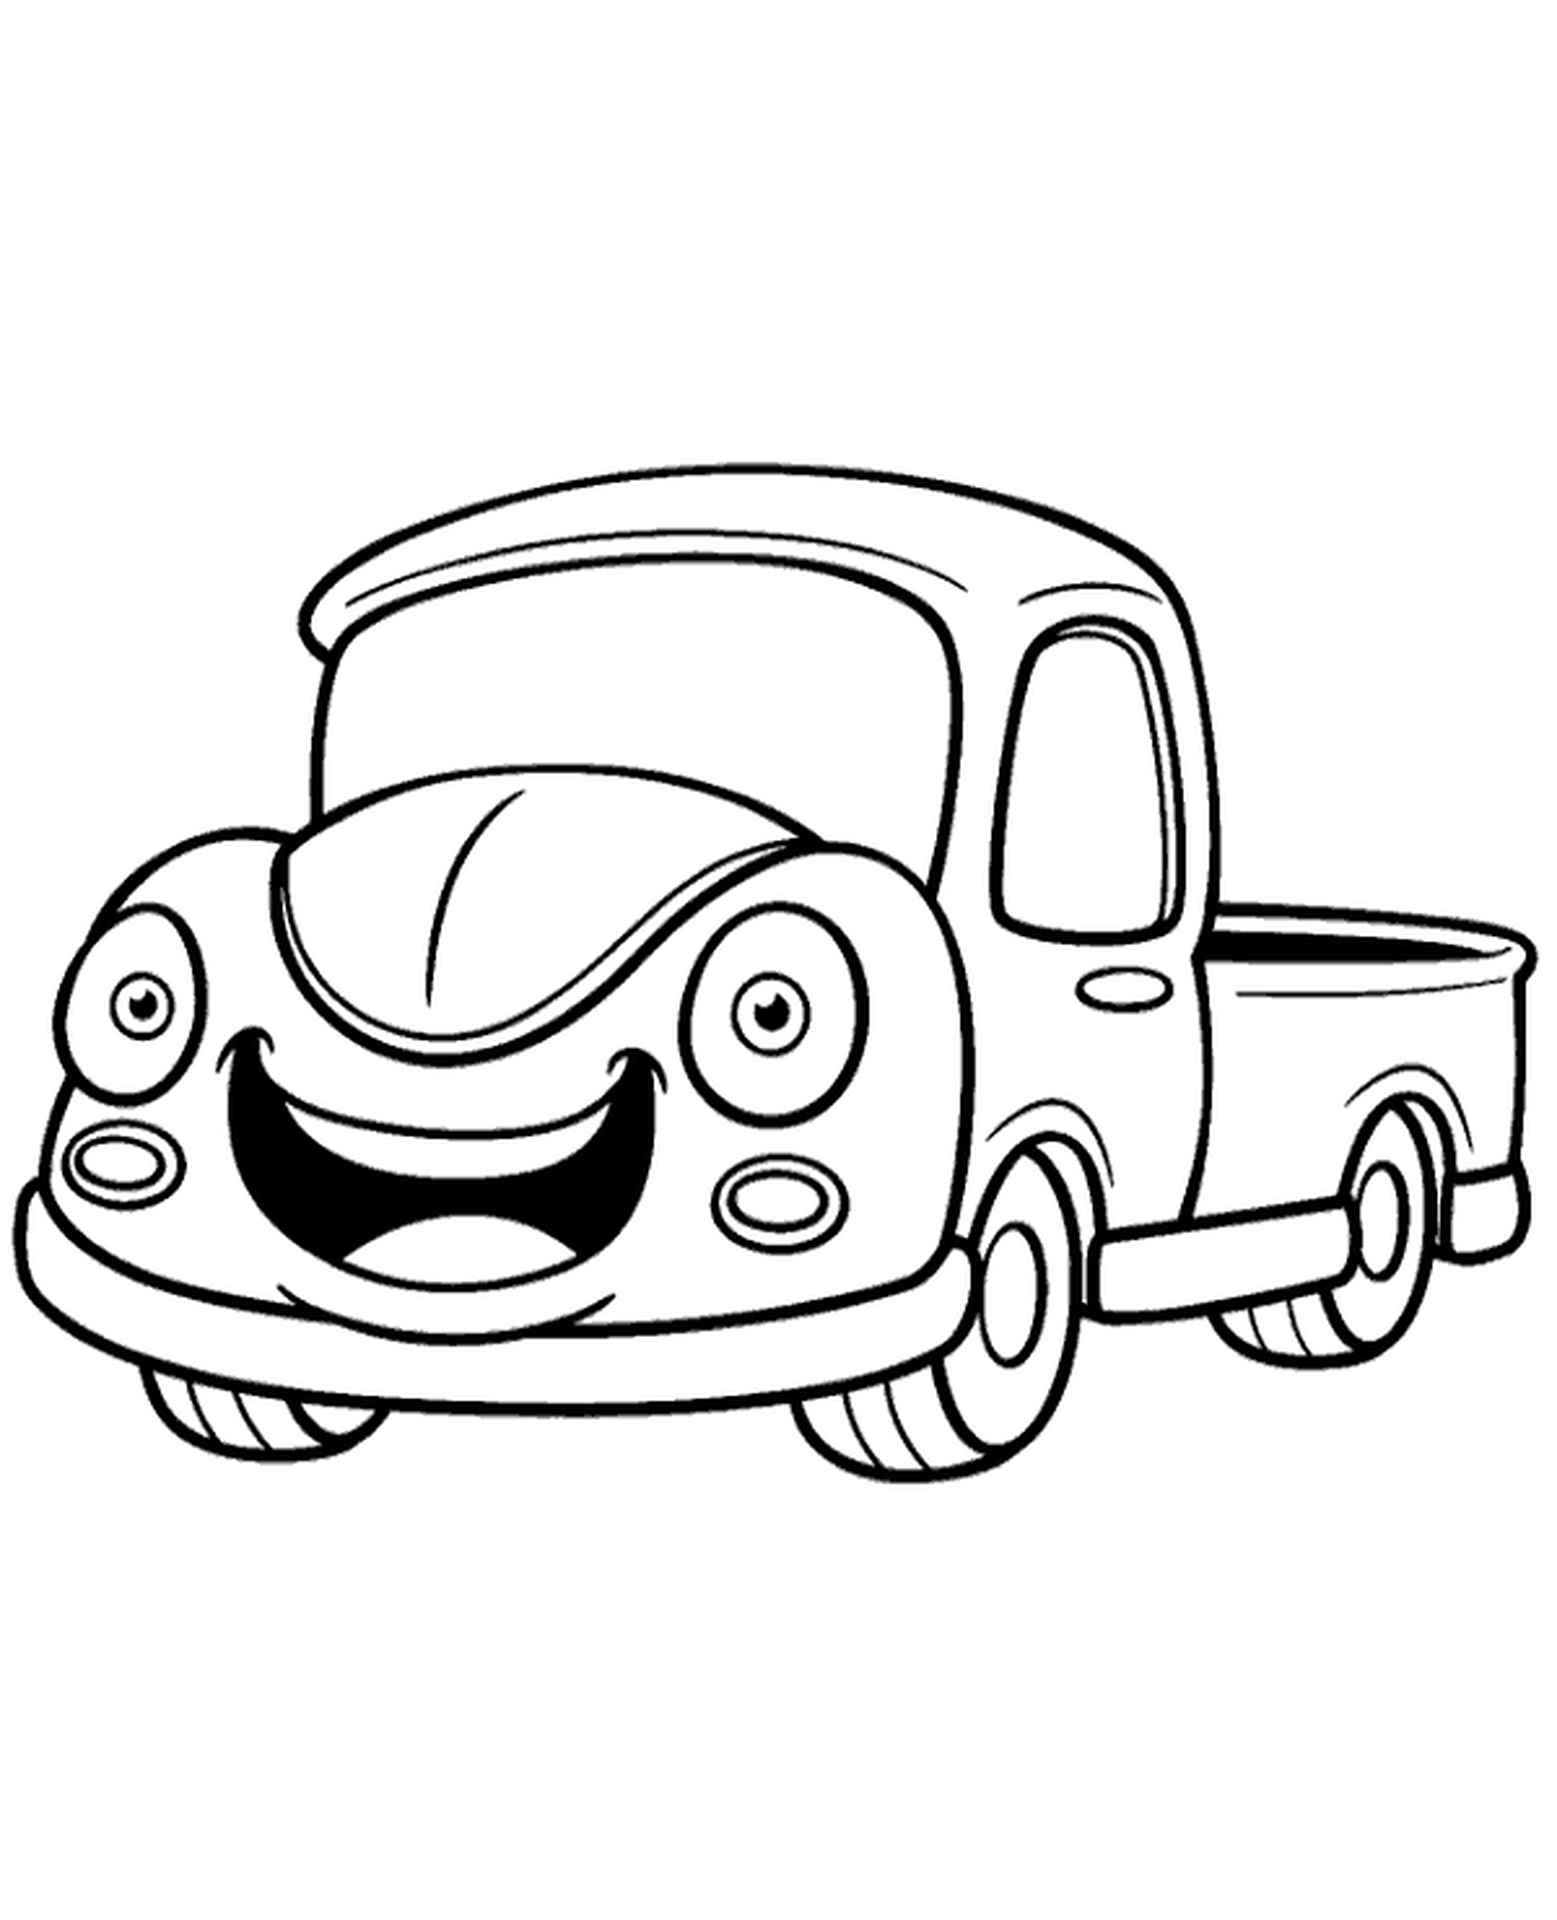 Car Coloring Page For Beginners